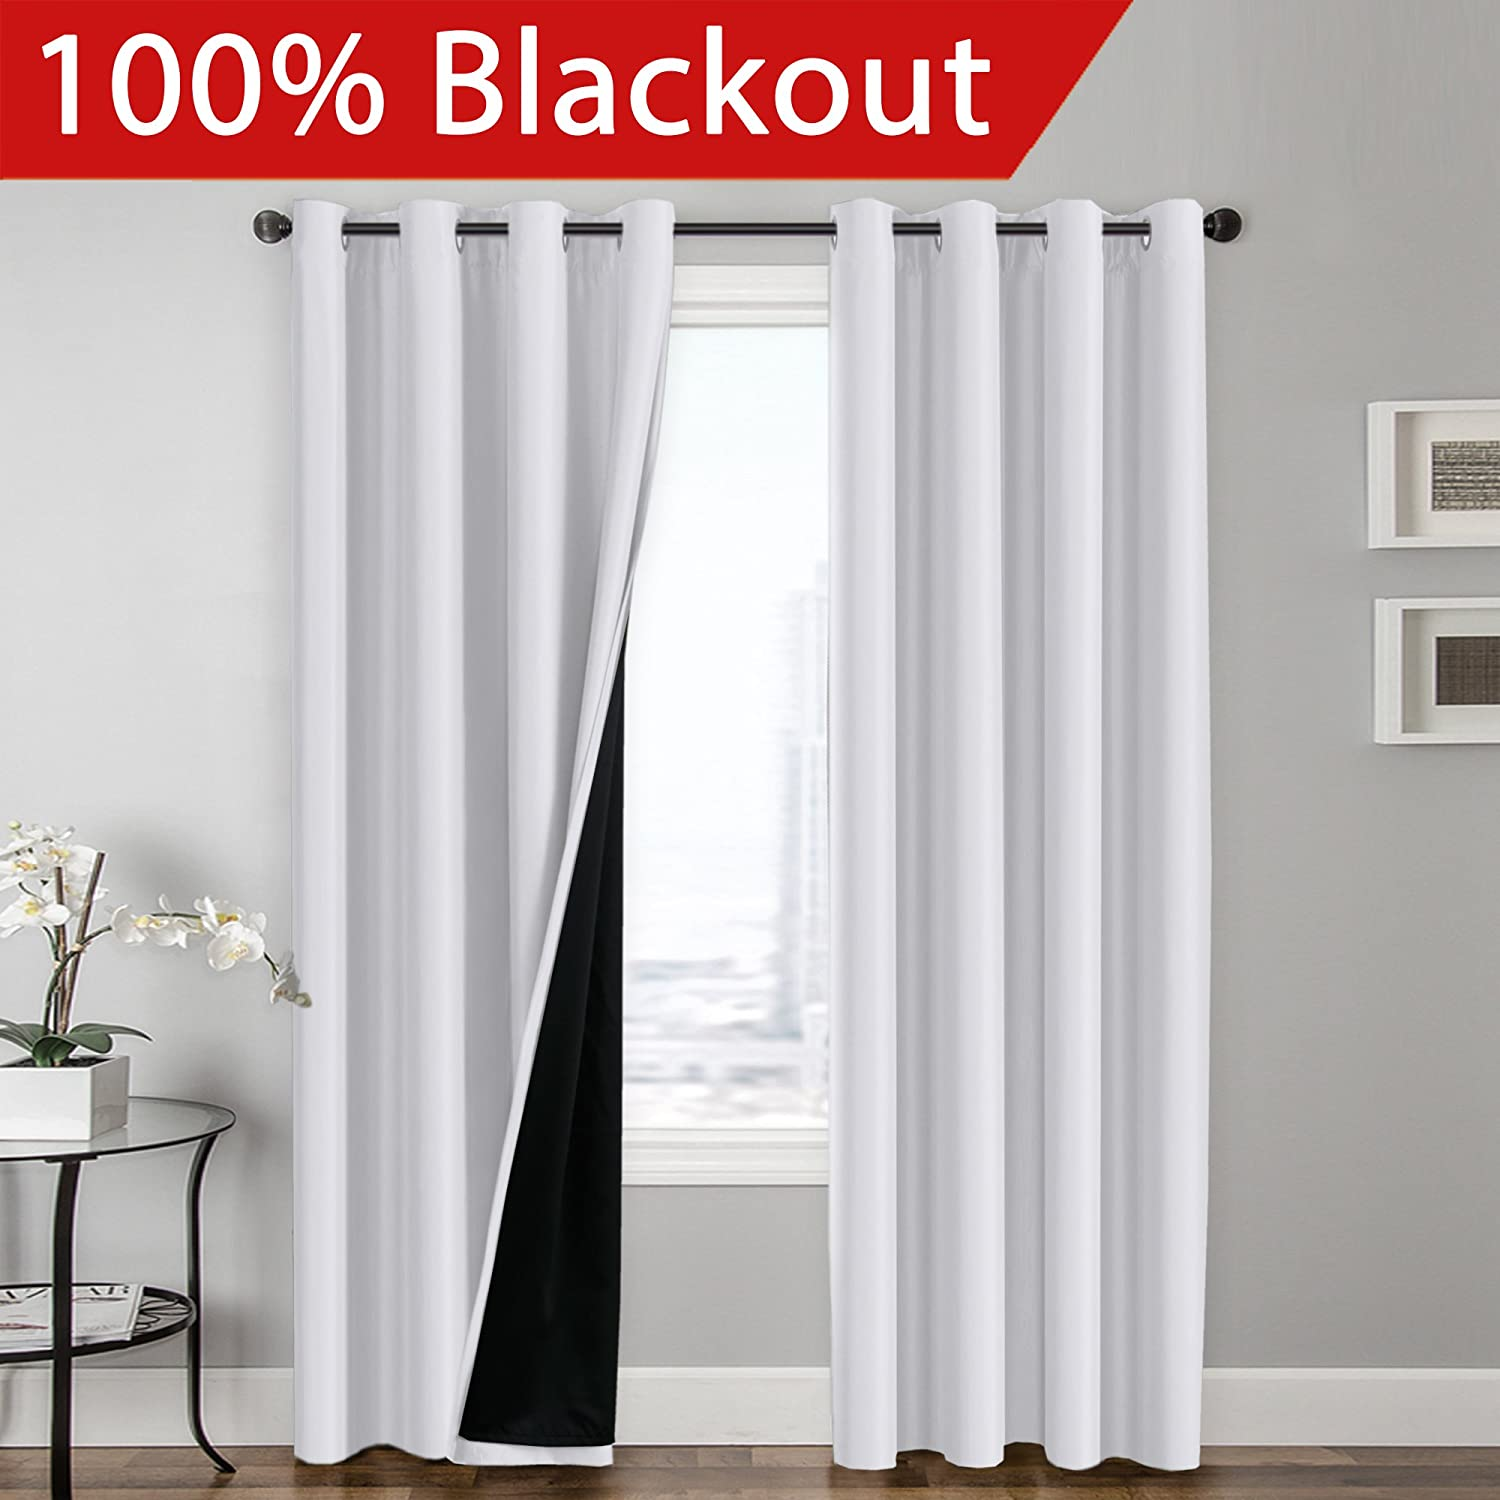 awesome top cheap with tab style bedroom elegant thermal curtain bedding of amazon blackout curtains ease